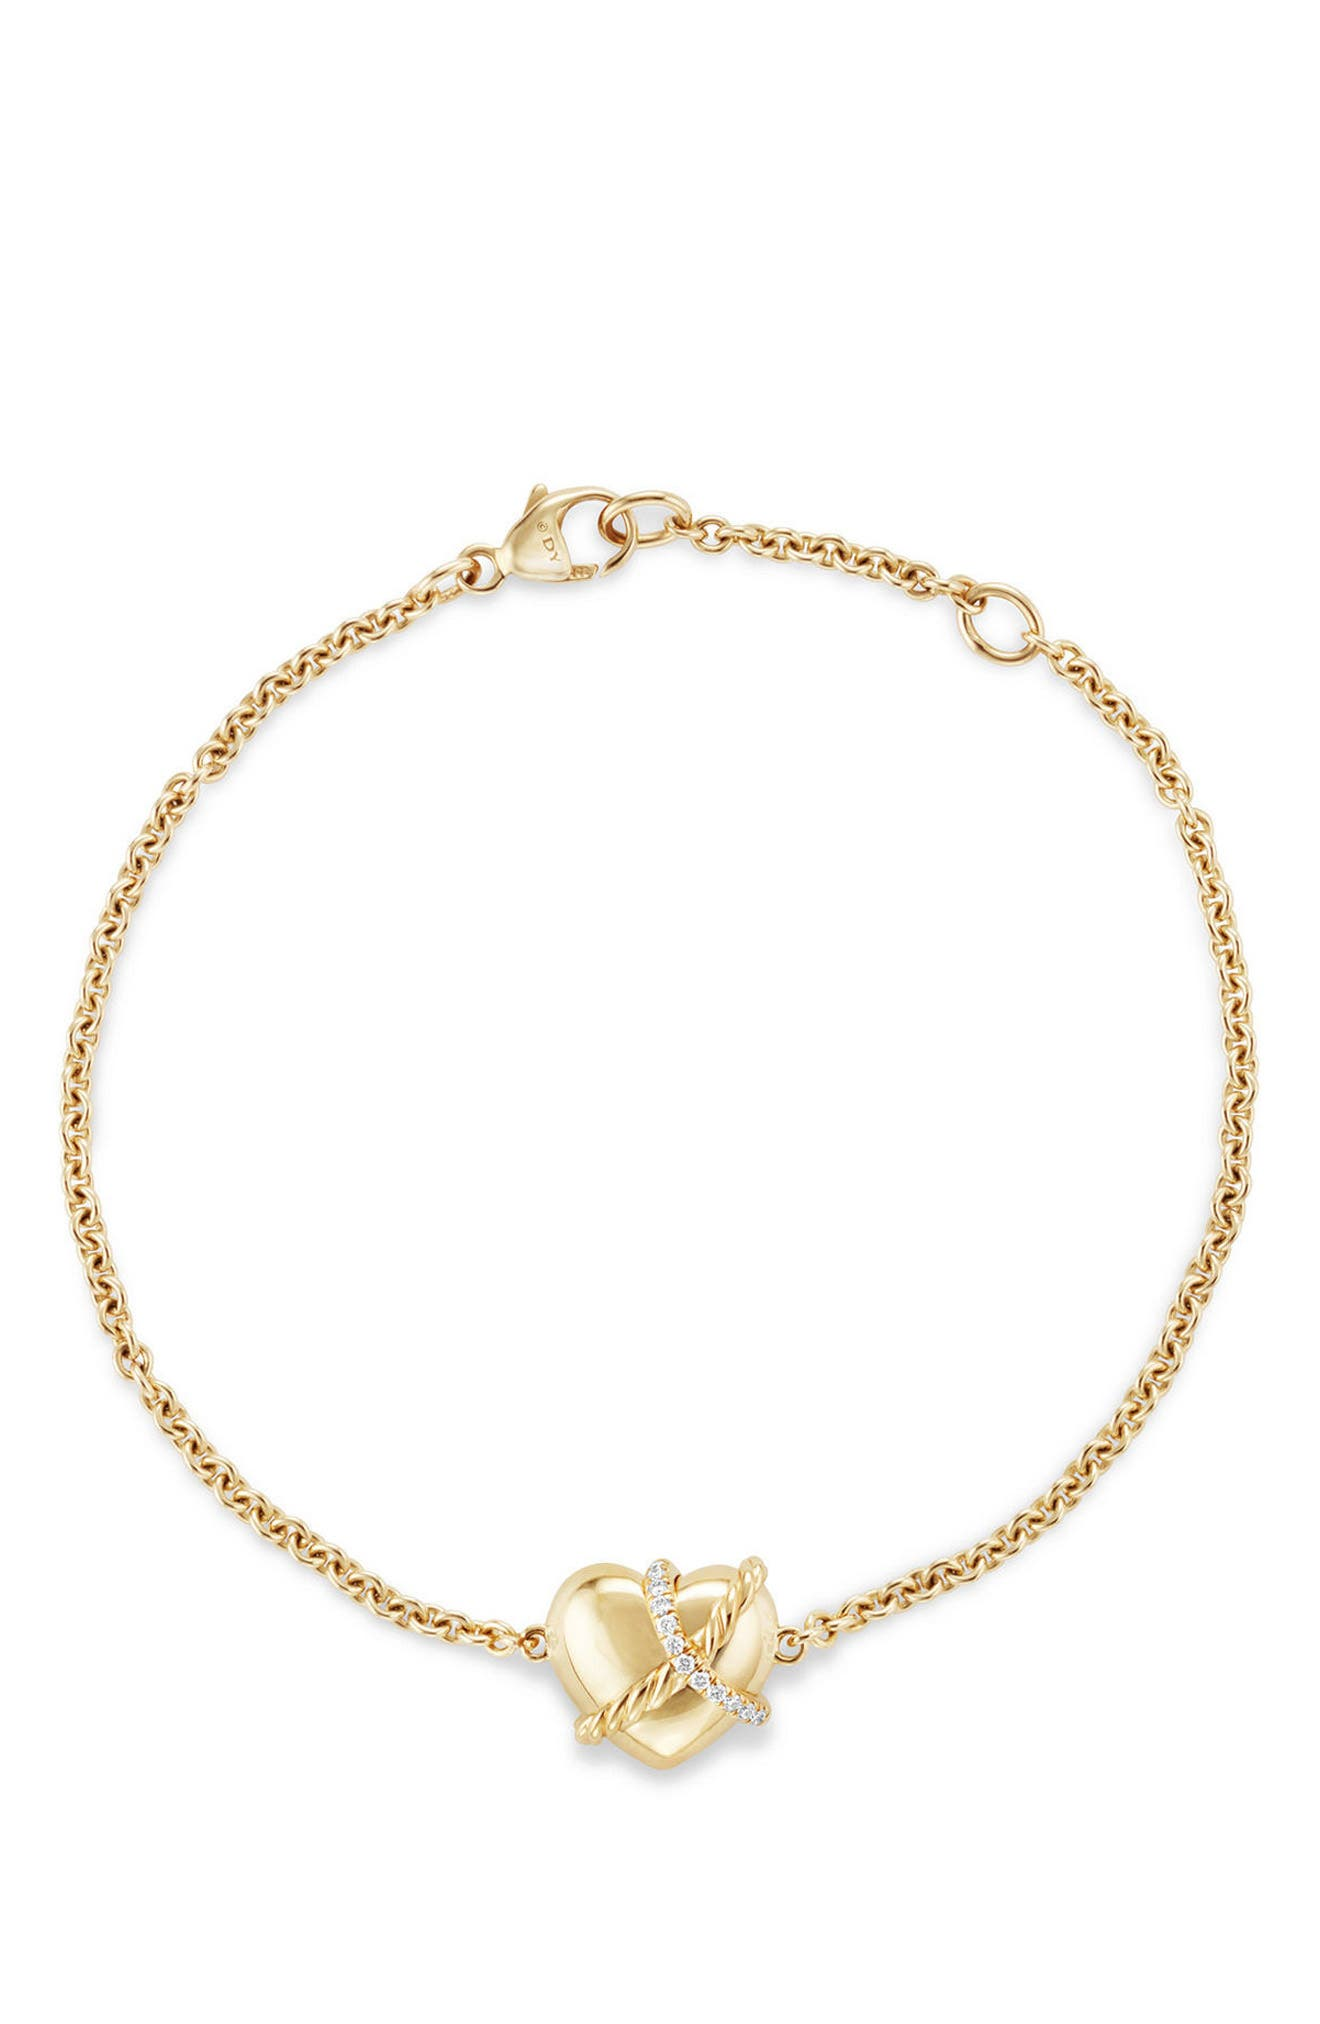 Heart Bracelet in 18K Gold with Diamonds,                             Alternate thumbnail 3, color,                             YELLOW GOLD/ DIAMOND